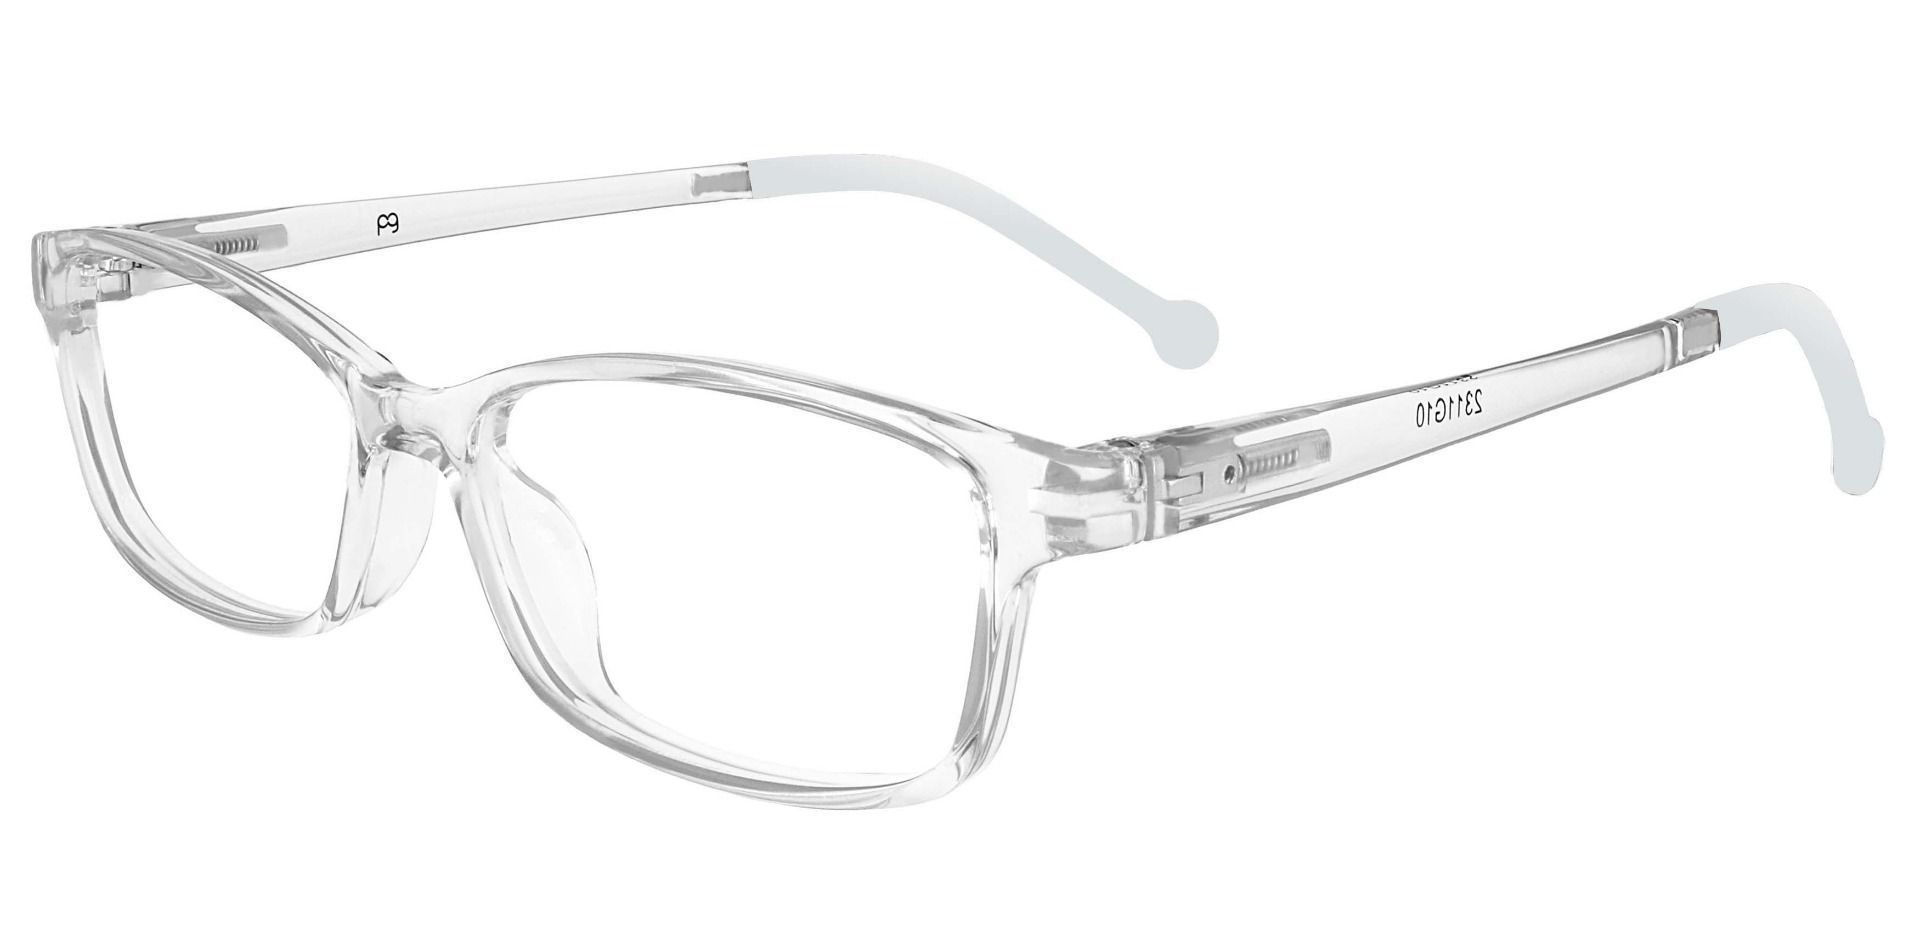 Otis Rectangle Single Vision Glasses - Gray